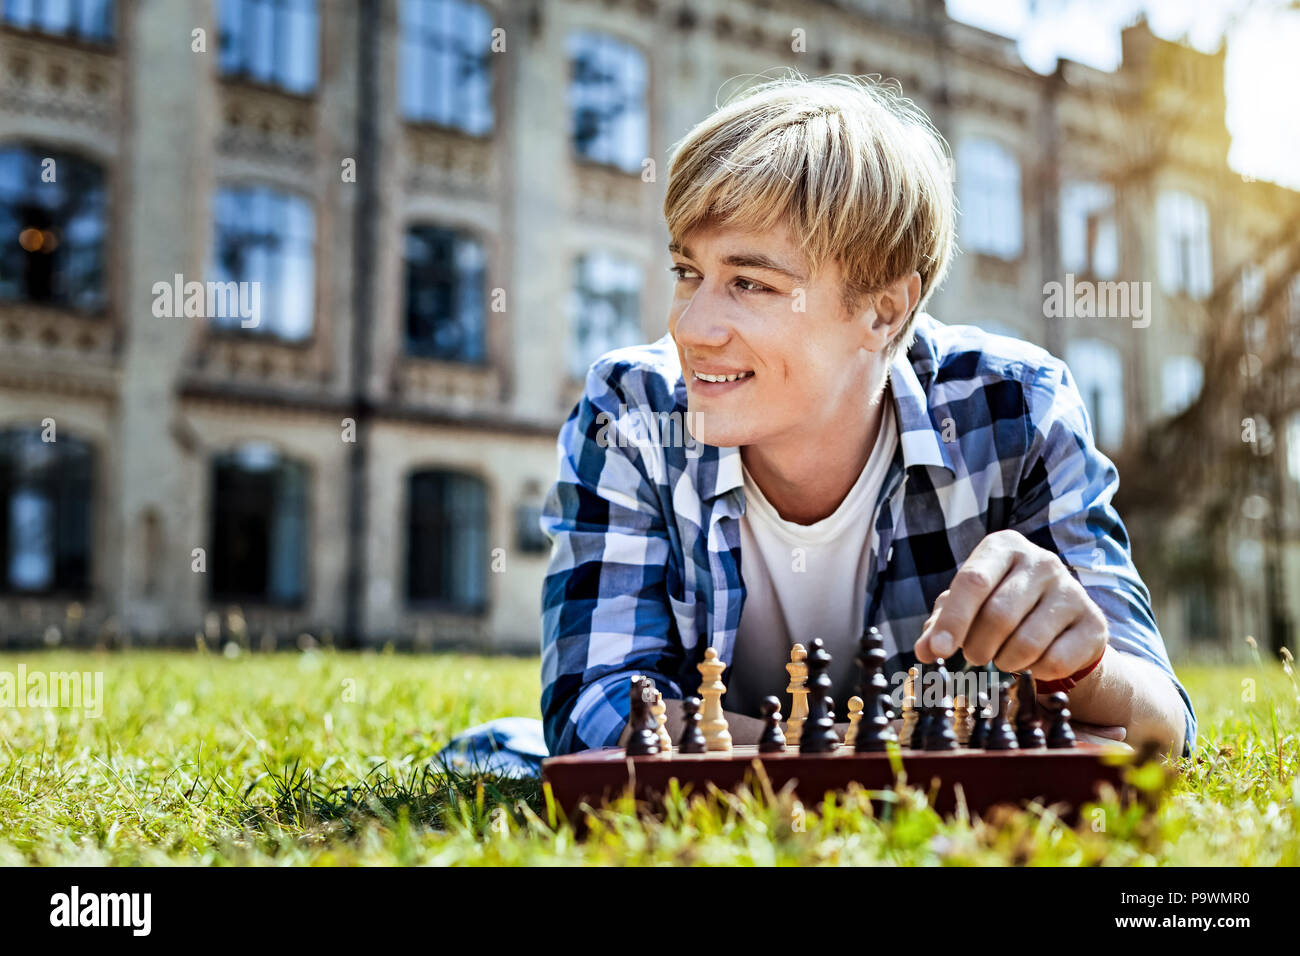 Pensive guy smiling while playing chess Photo Stock